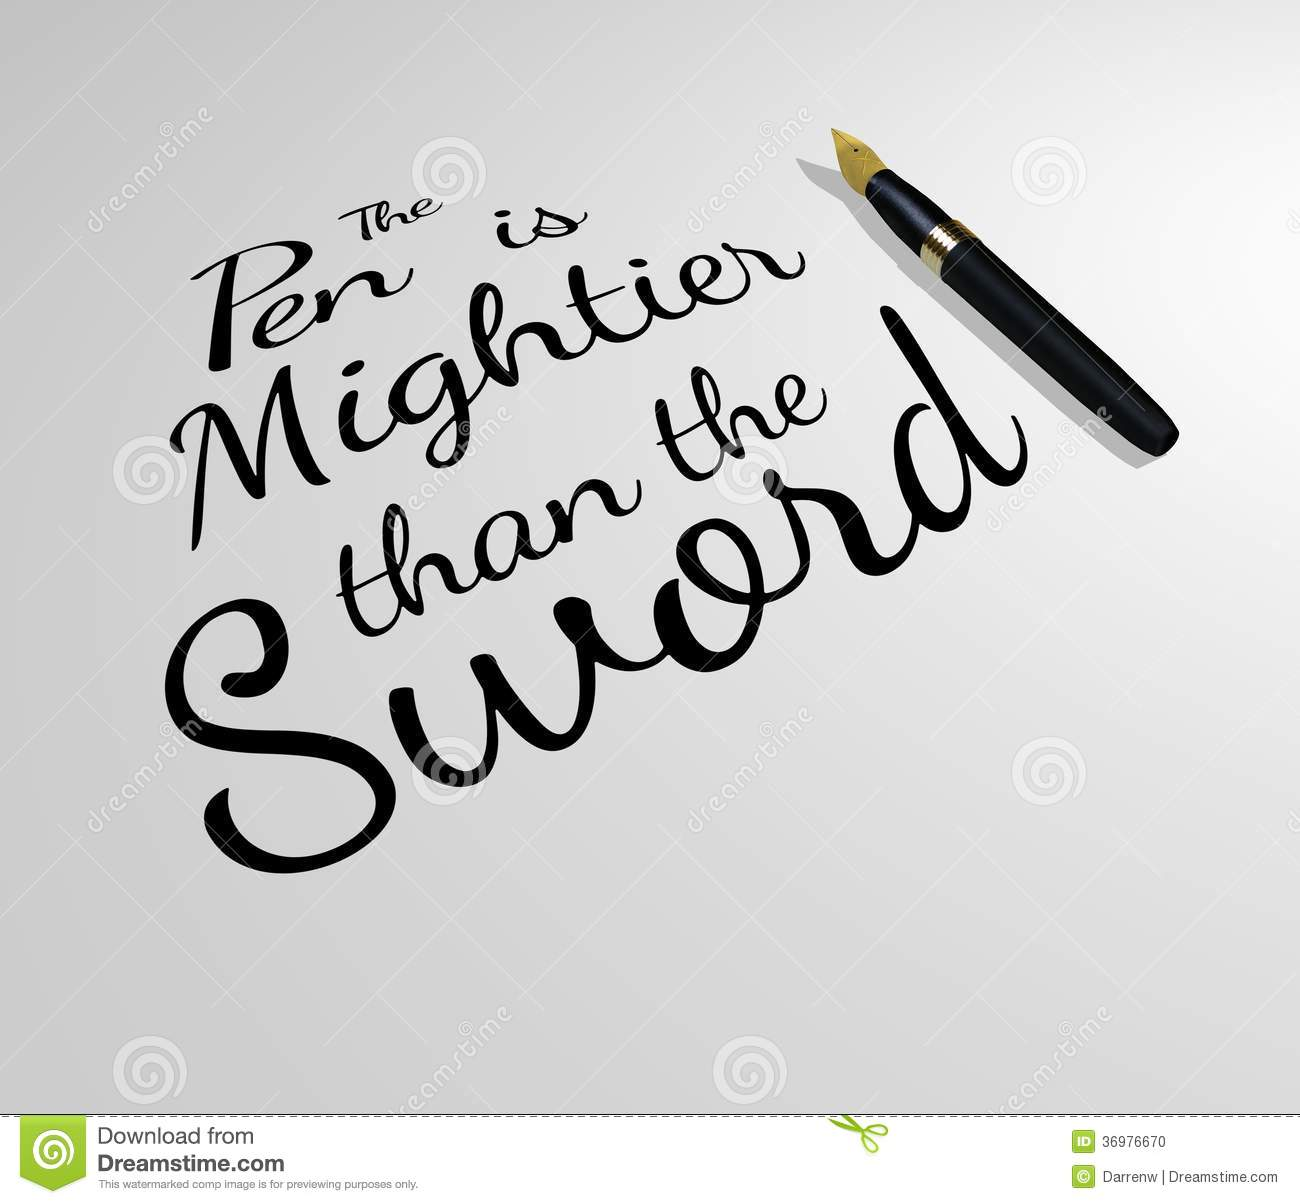 pen is mightier than sword essay  than sword essay · mightier quotes brainyquote pens and guns pointing at each other mightier quotes brainyquote pens and guns pointing at each other